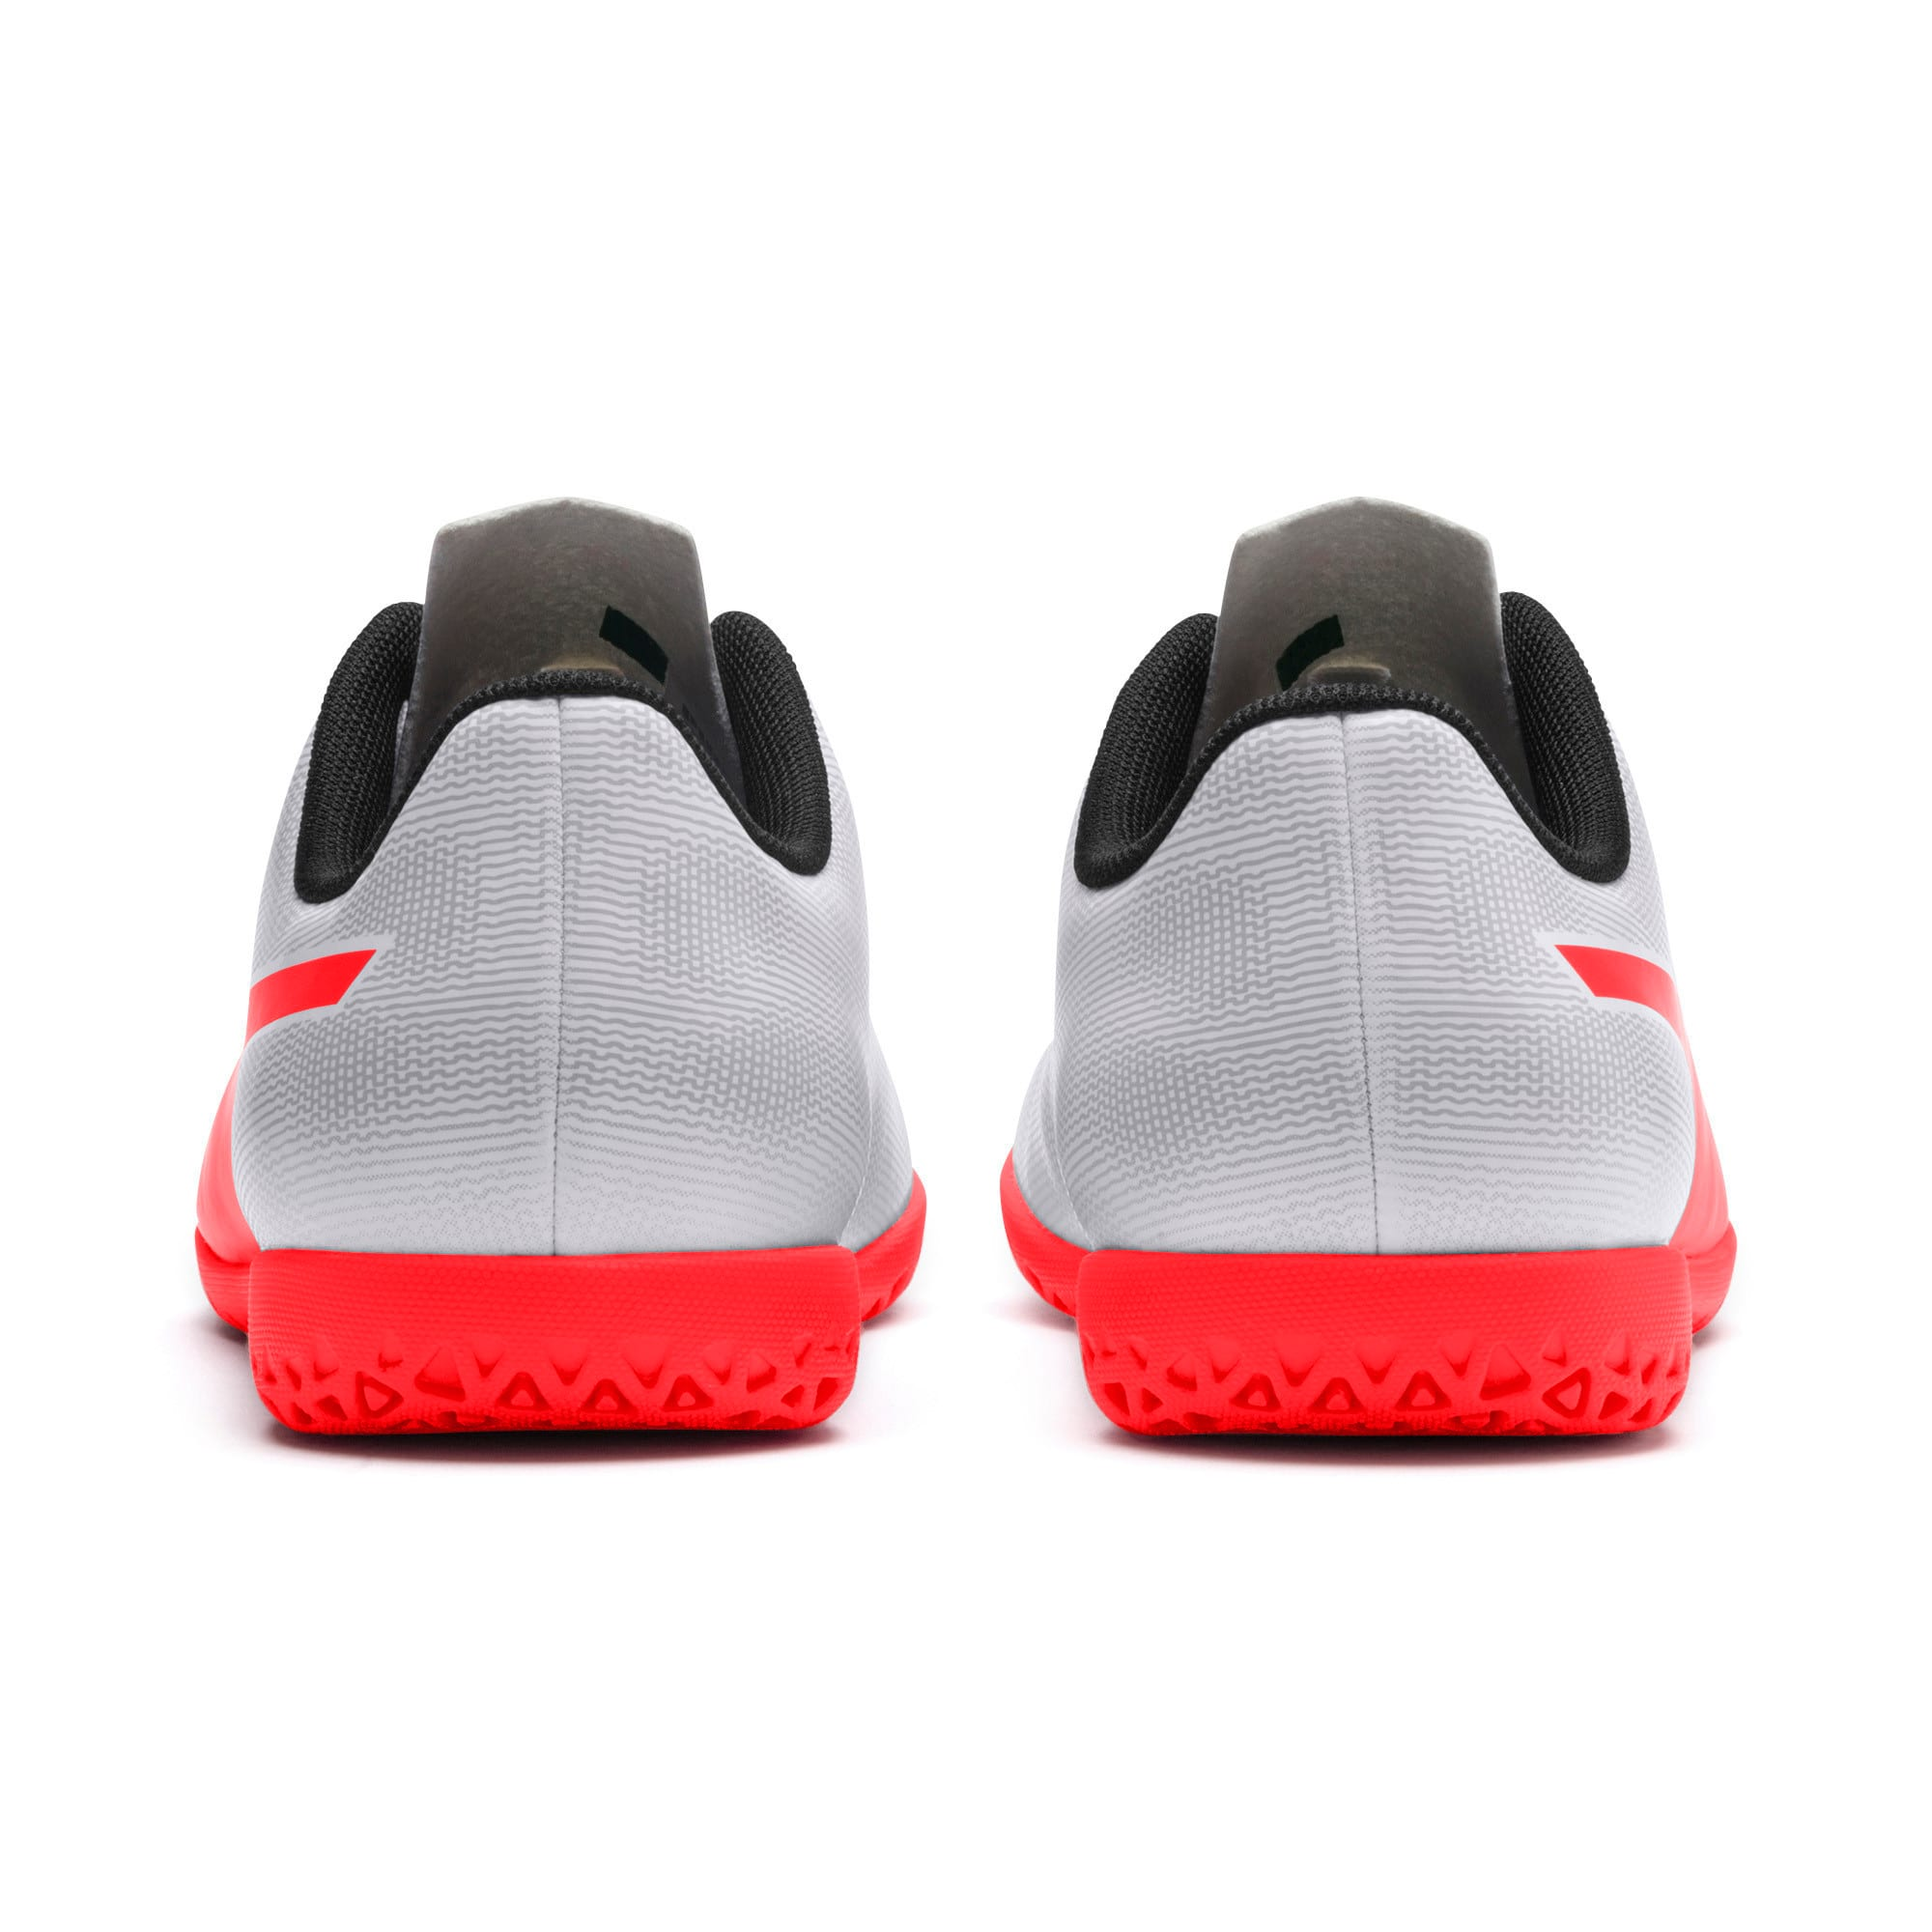 Thumbnail 2 of Rapido IT Youth Football Boots, White-Gray-Black-Red Blast, medium-IND